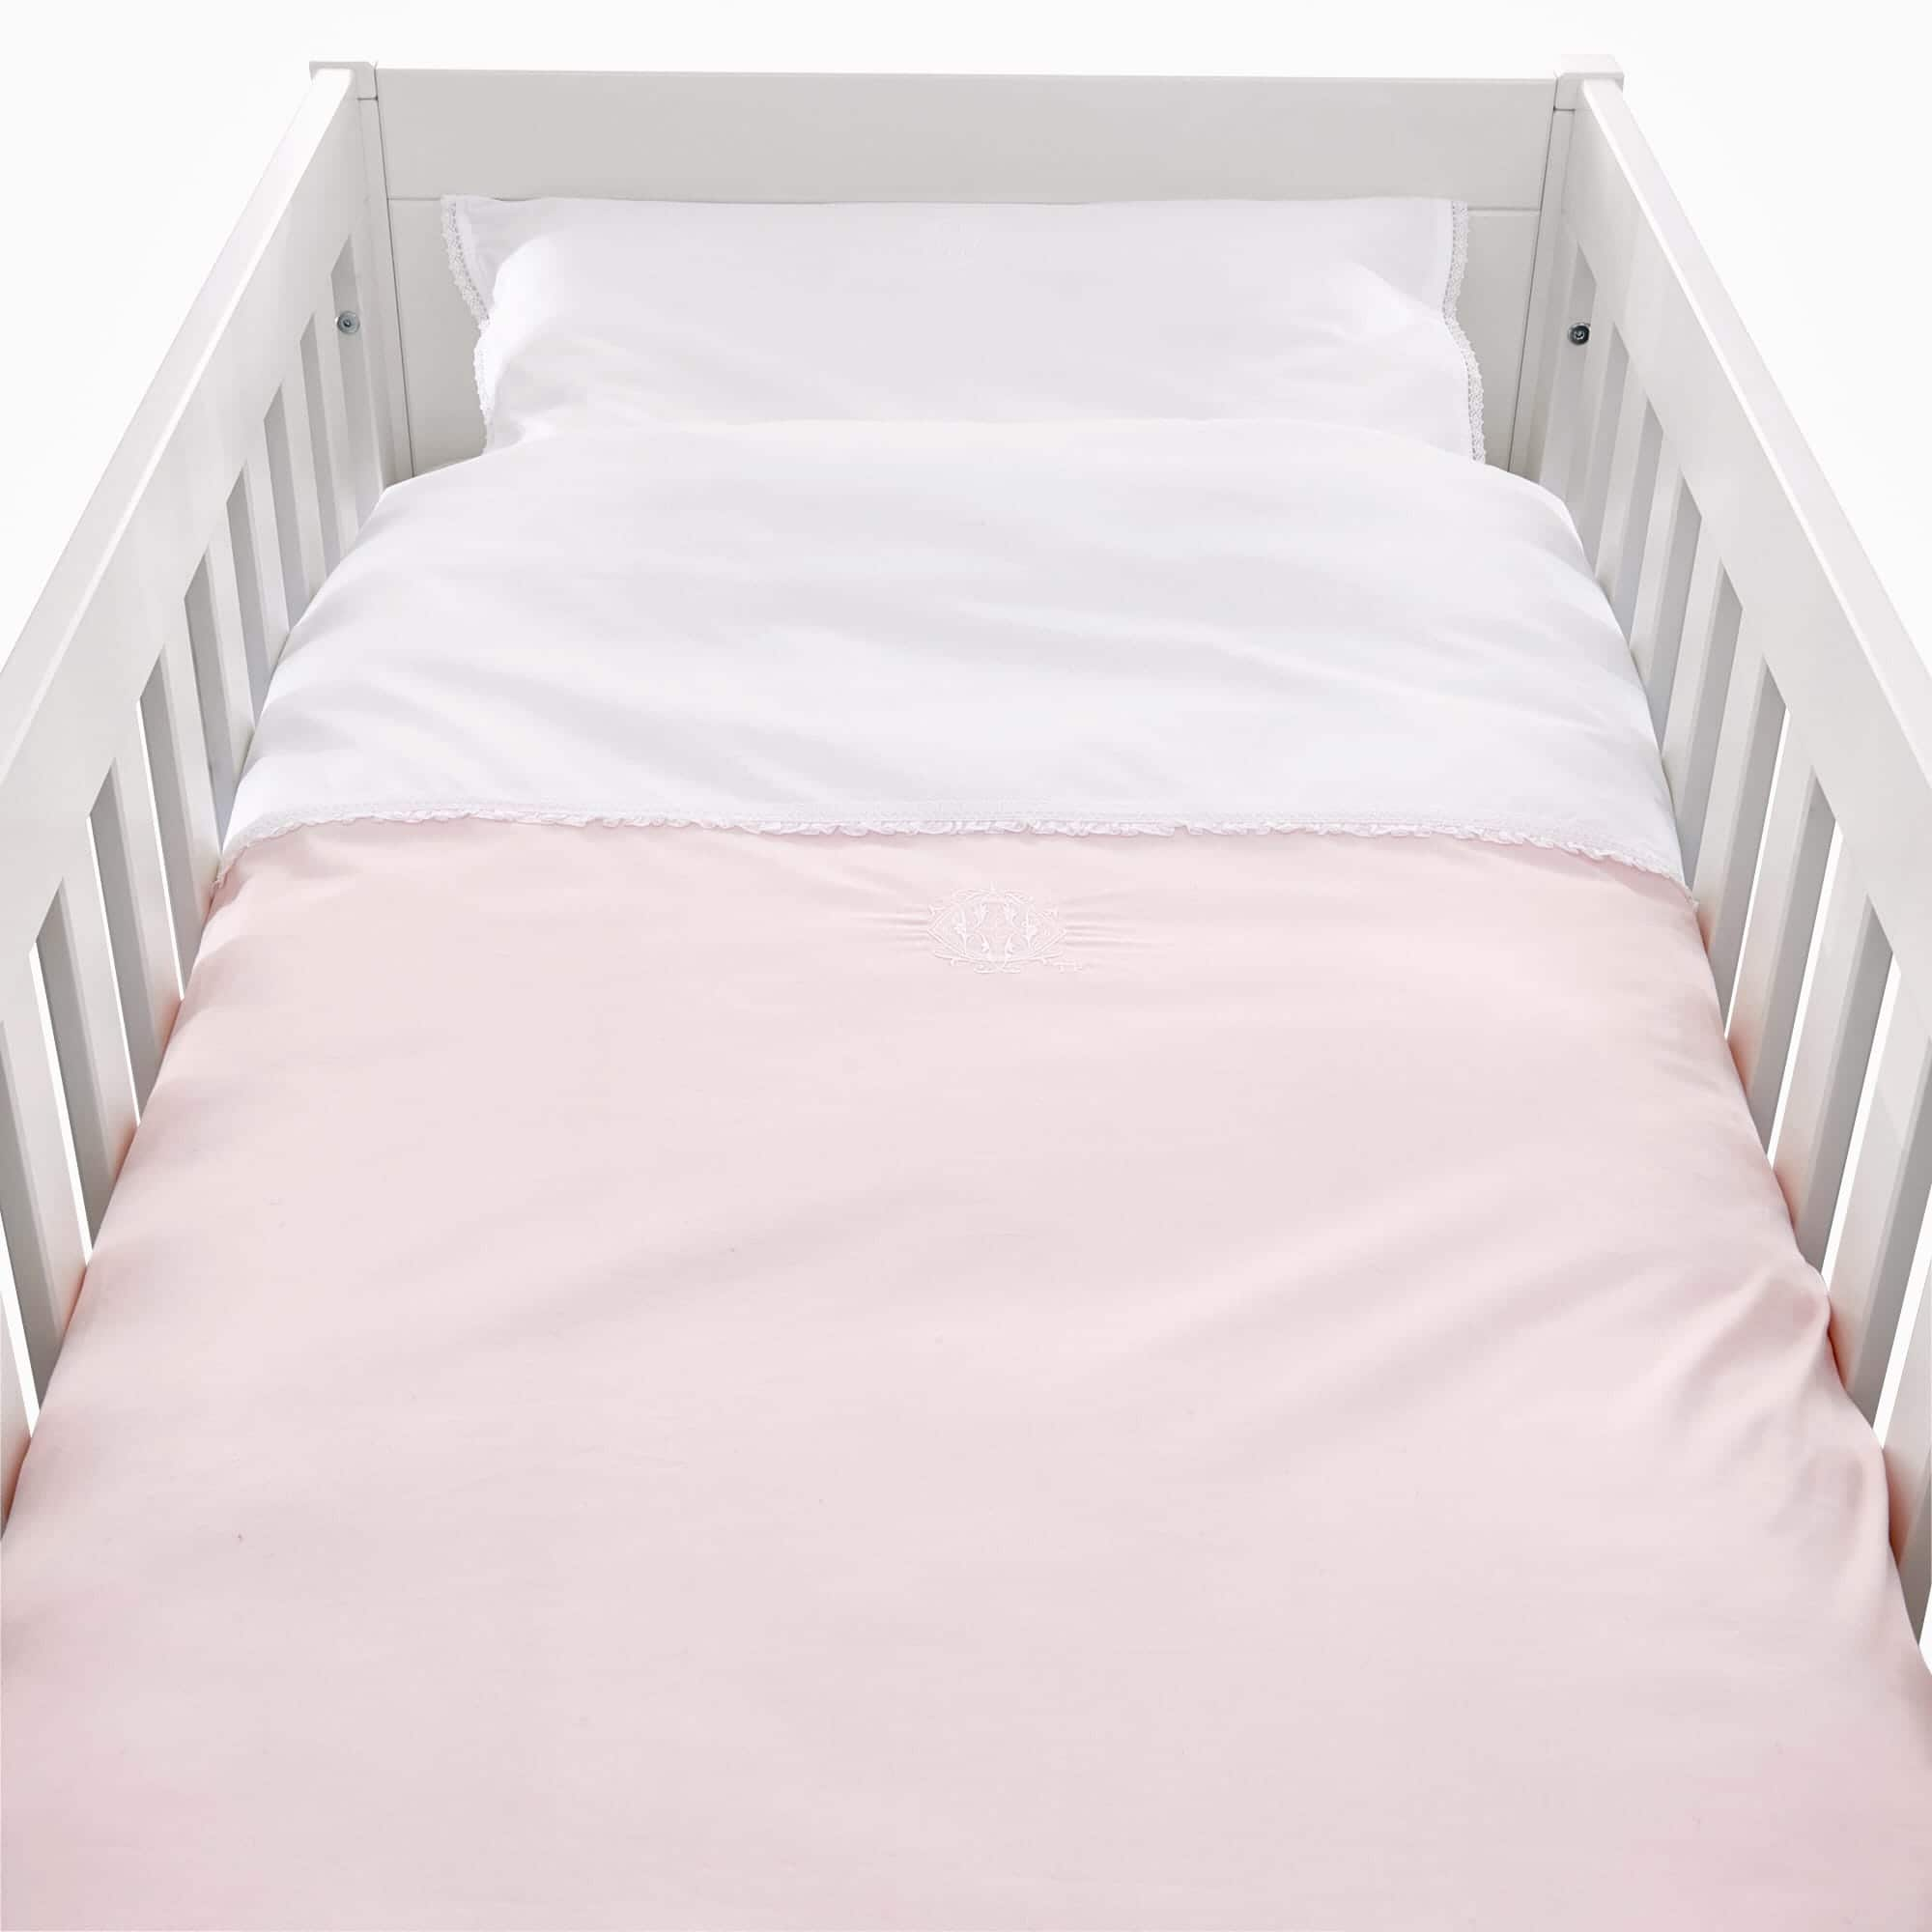 dusky cover ems king size and duvet twin ideas pillowcase touch soft pale covers s set bold pink